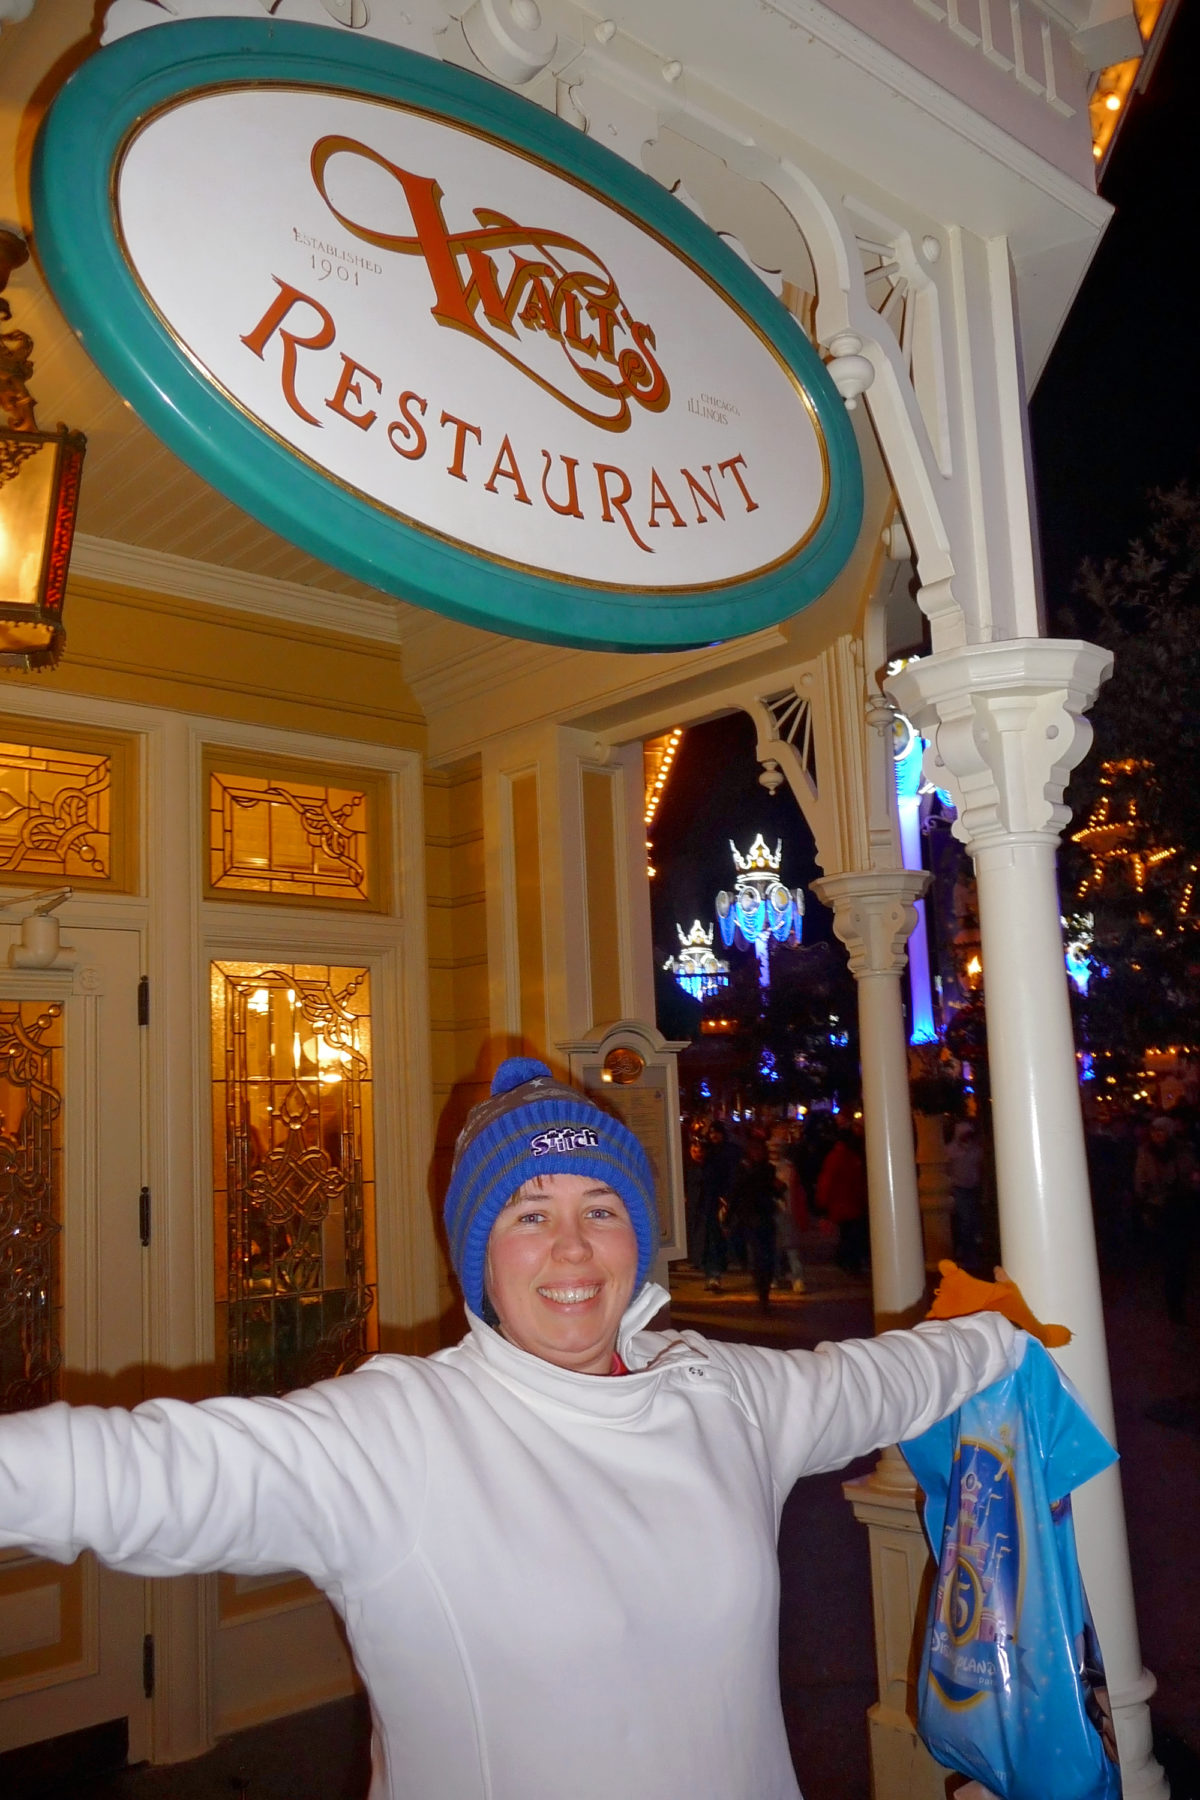 Image shows the entrance and exit of walt's restaurant in disneyland paris.